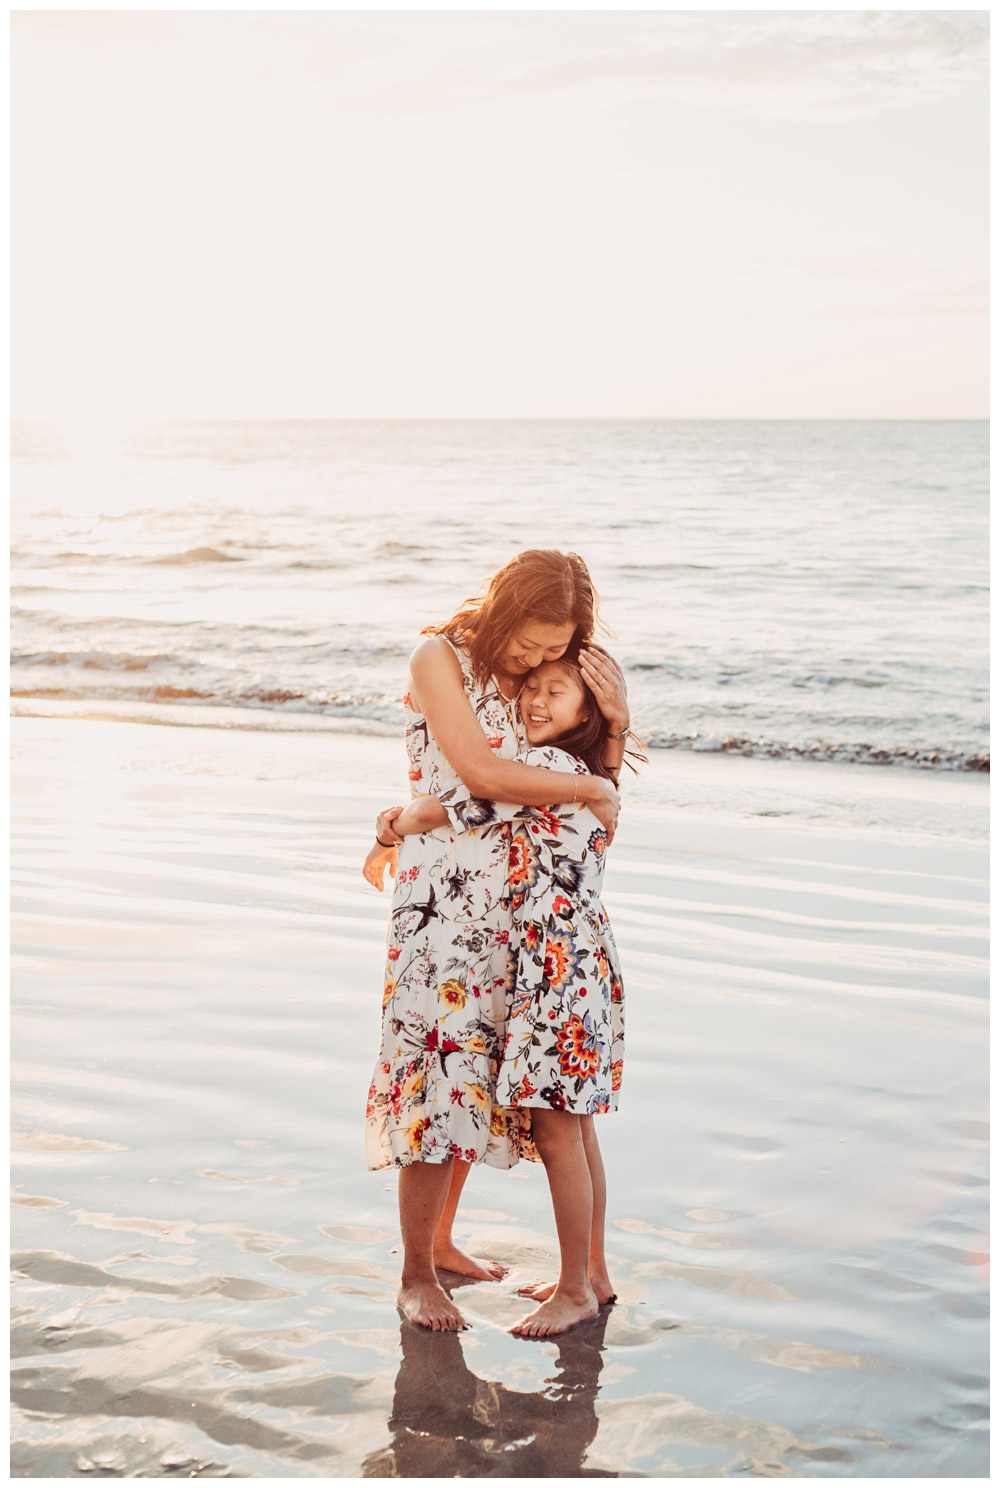 Mother and daughter hugging on the beach during family photos in Playa Flamingo Costa Rica. Photographed by Kristen M. Brown, Samba to the Sea Photography.